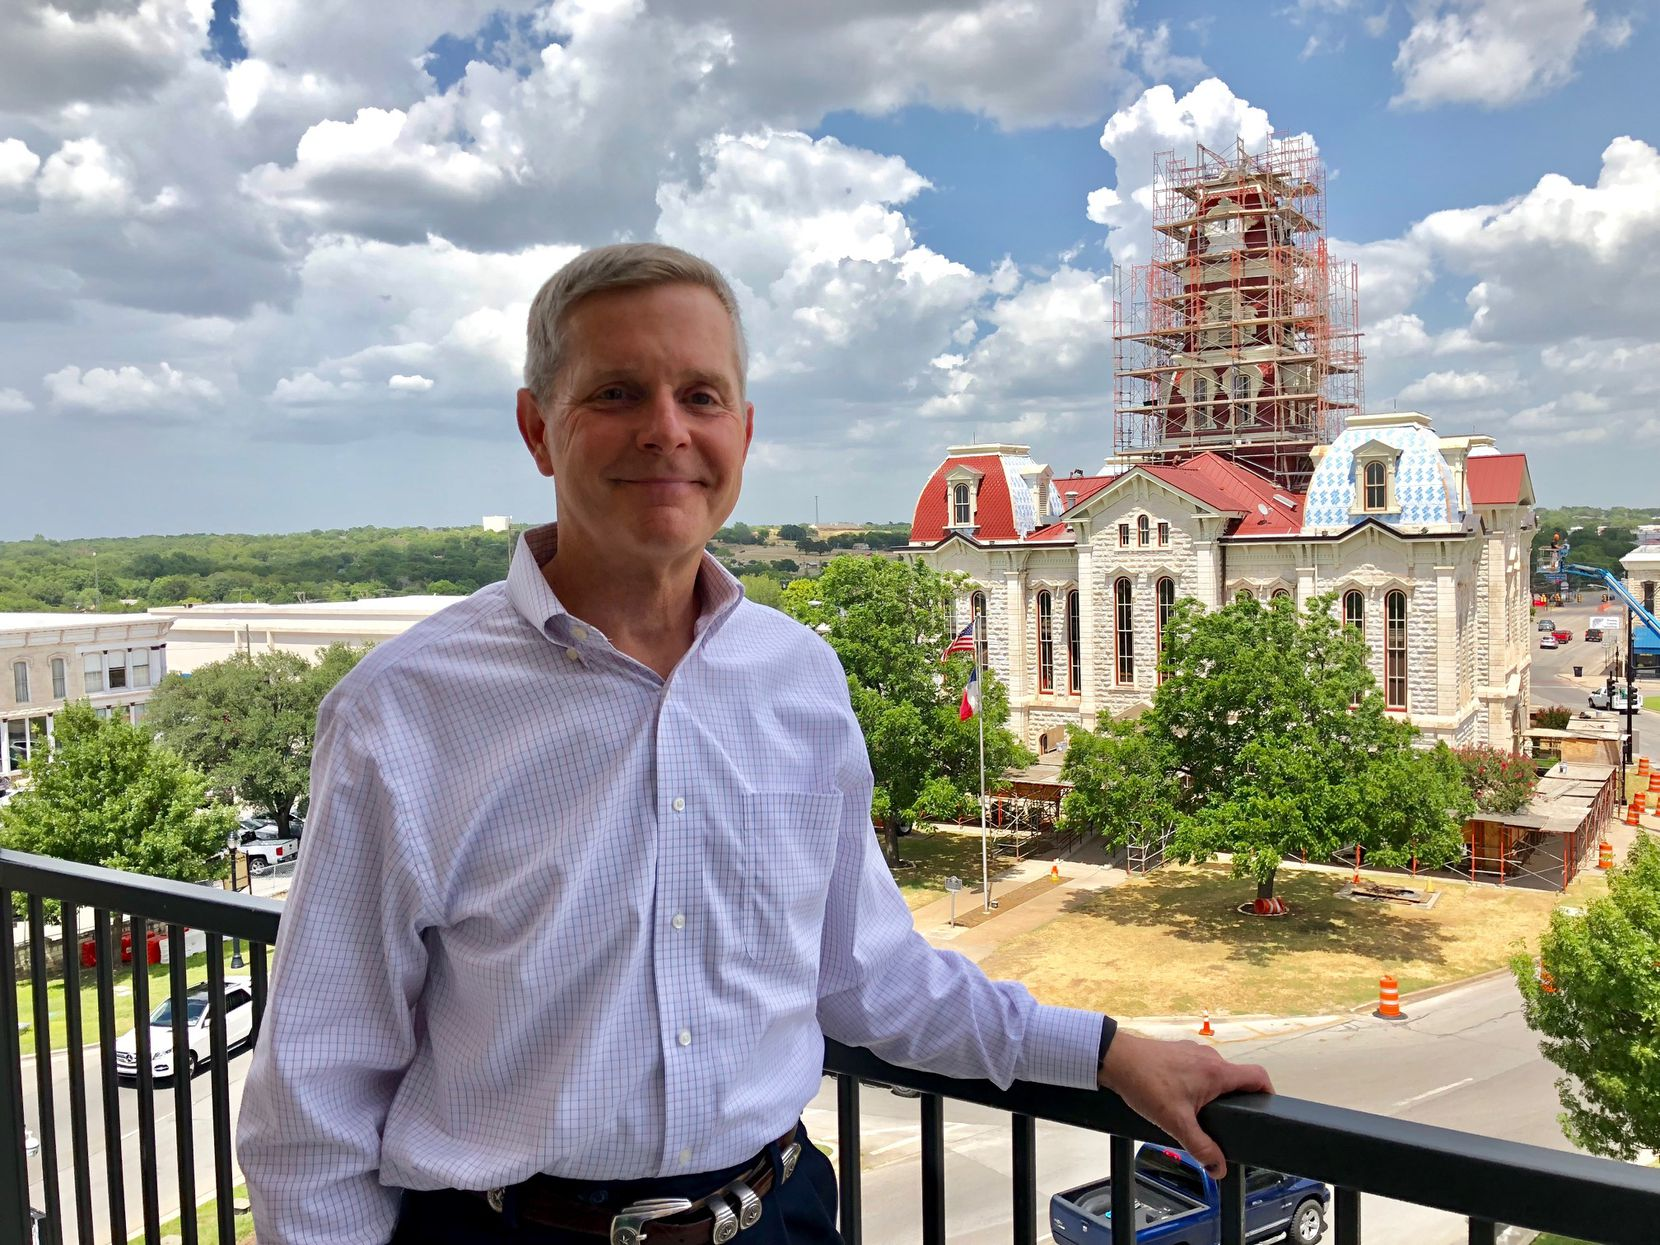 As a rookie, State Rep. Phil King of Weatherford helped pass the law 20 years ago to deregulate electricity in Texas. Now The Watchdog asks him to help fix broken parts of the system. King is running for House speaker.